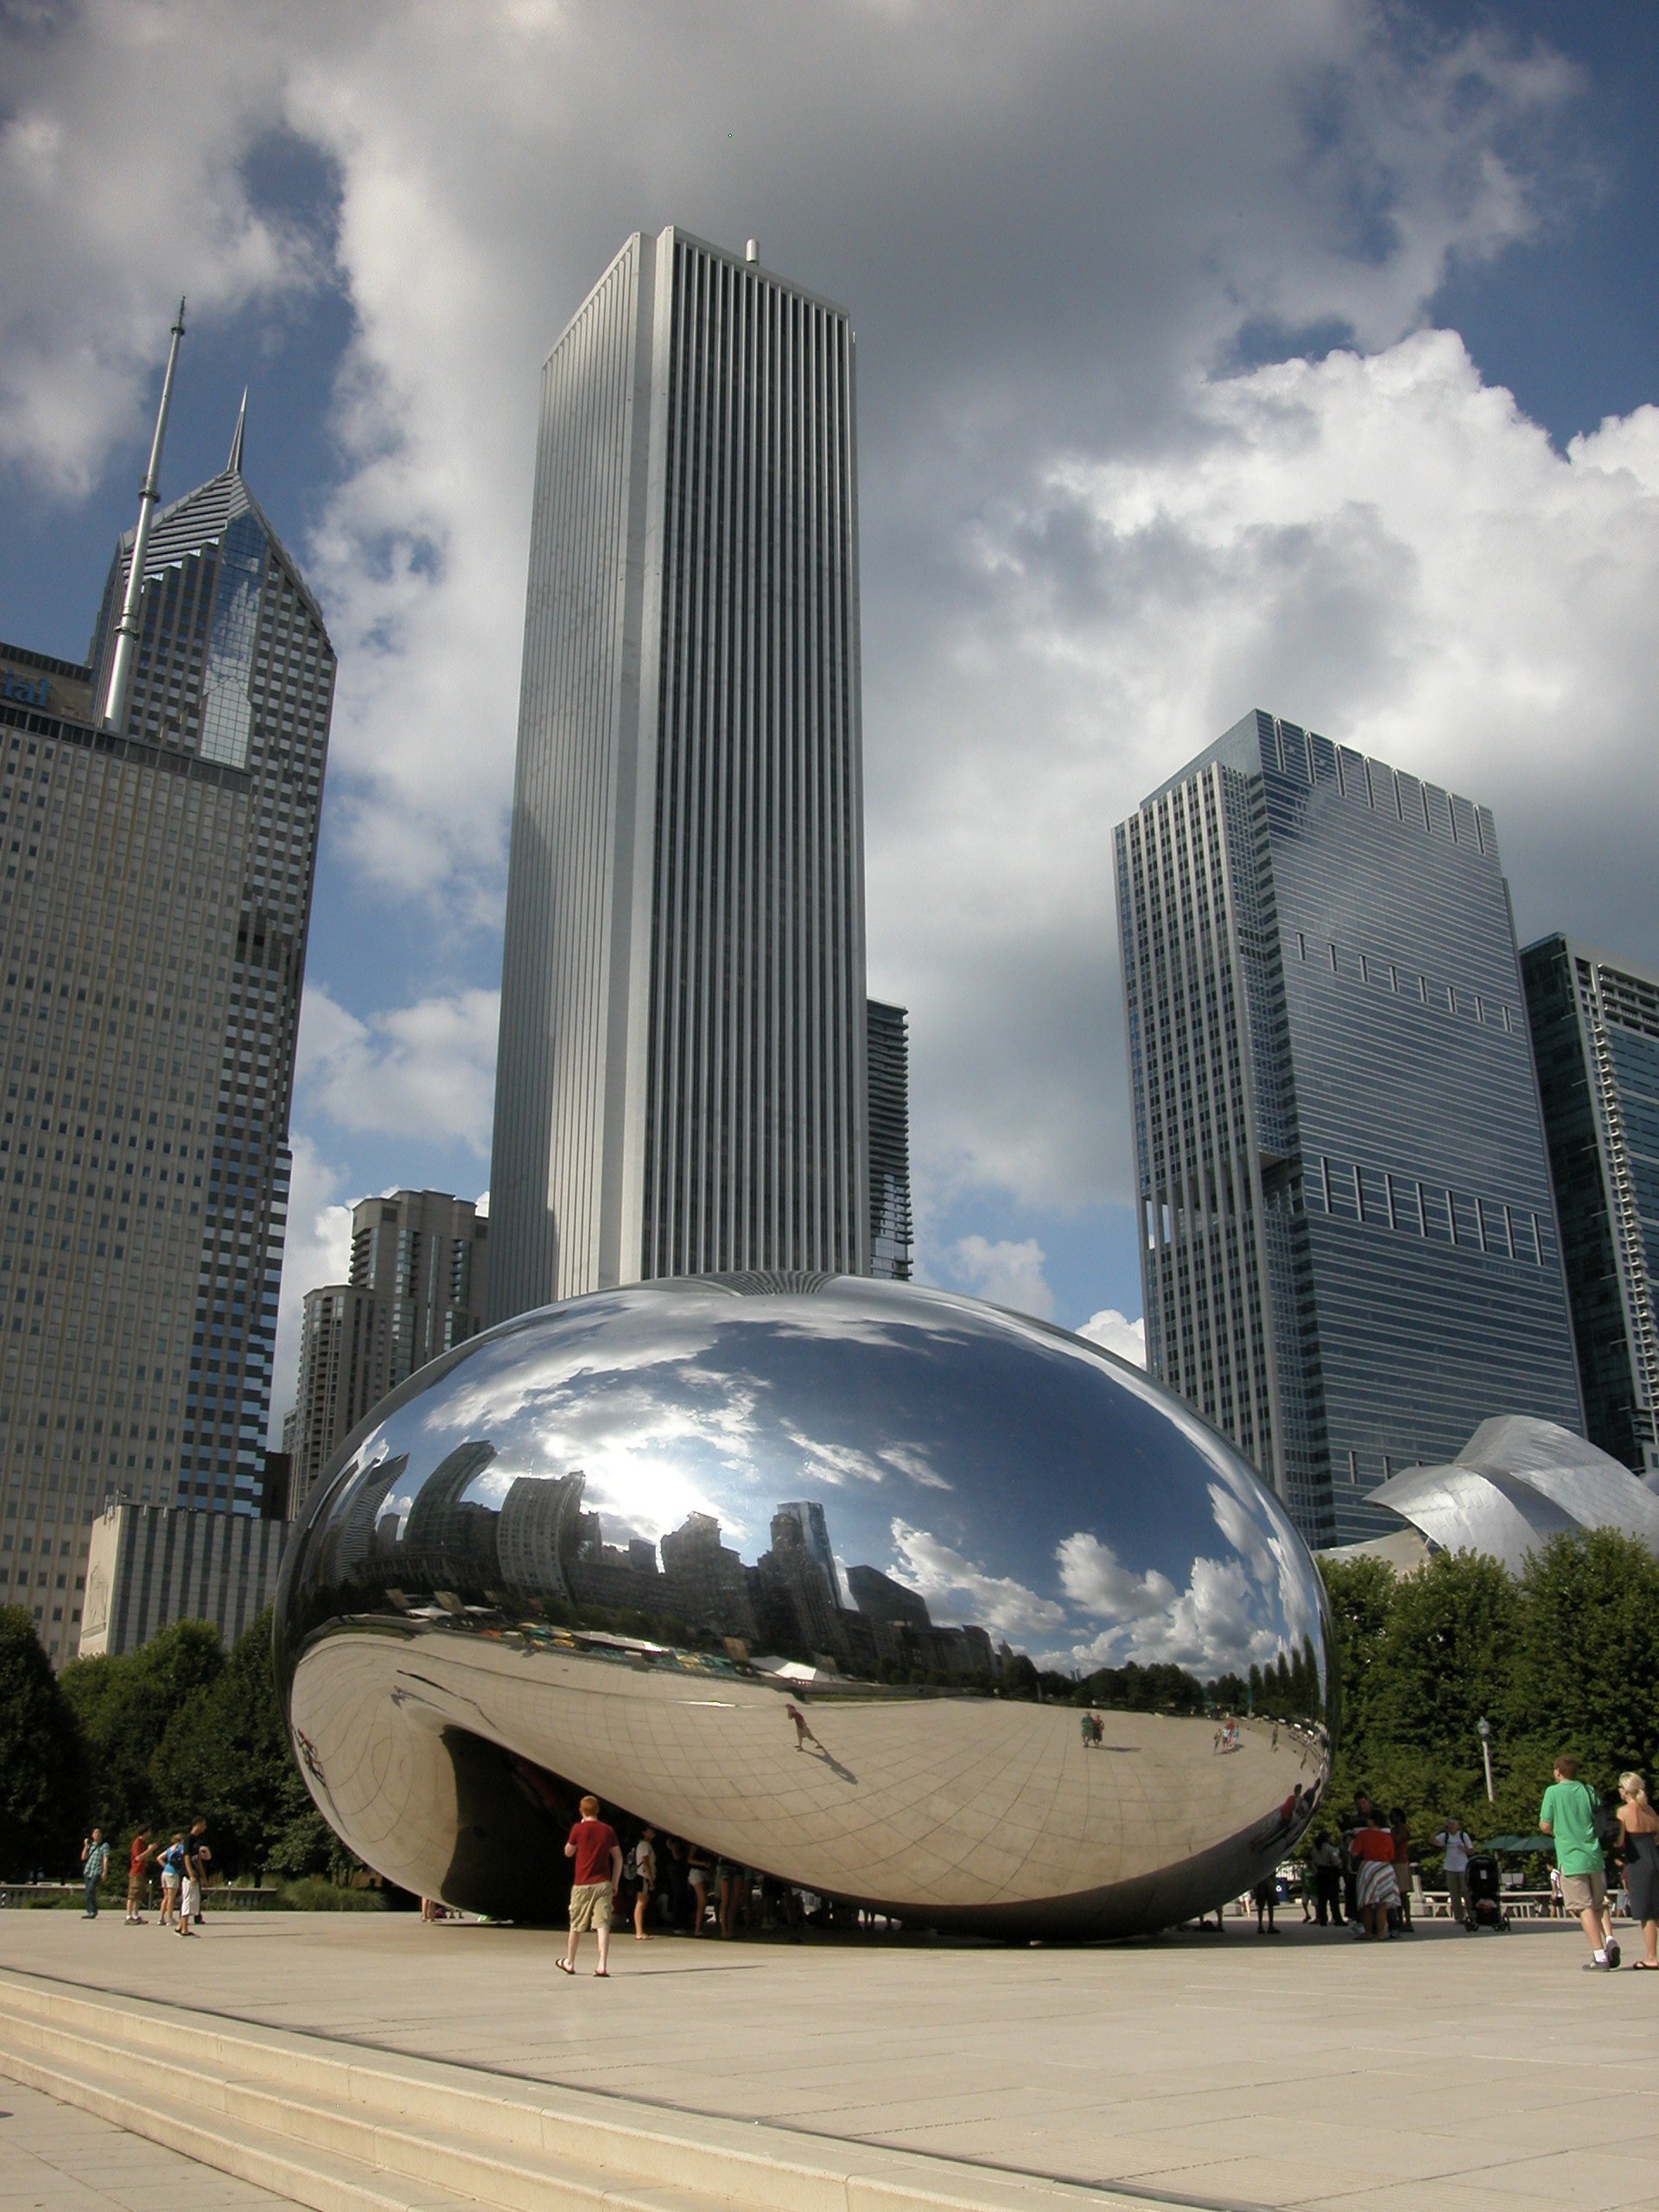 Wherever you go in Chicago, it's important to keep looking up at the city's fabulous architecture.  Above, one of the latest additions to  Chicago's skyline, Cloud Gate, a.k.a. The Bean.